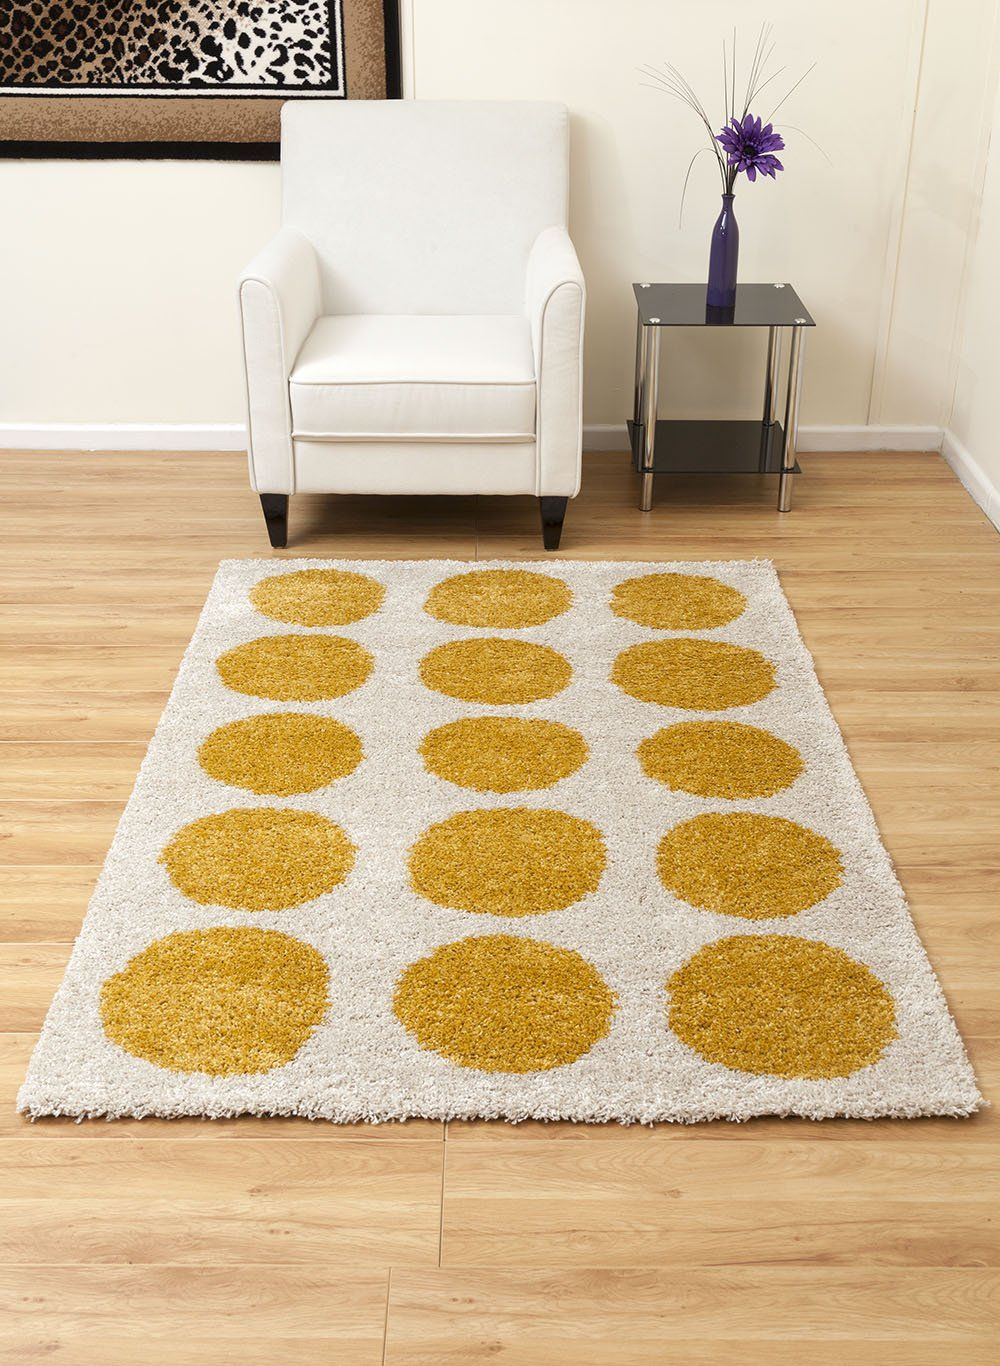 Abacus-Modern Thick Rug with Dot Pattern-Beige with Mustard Dots ...